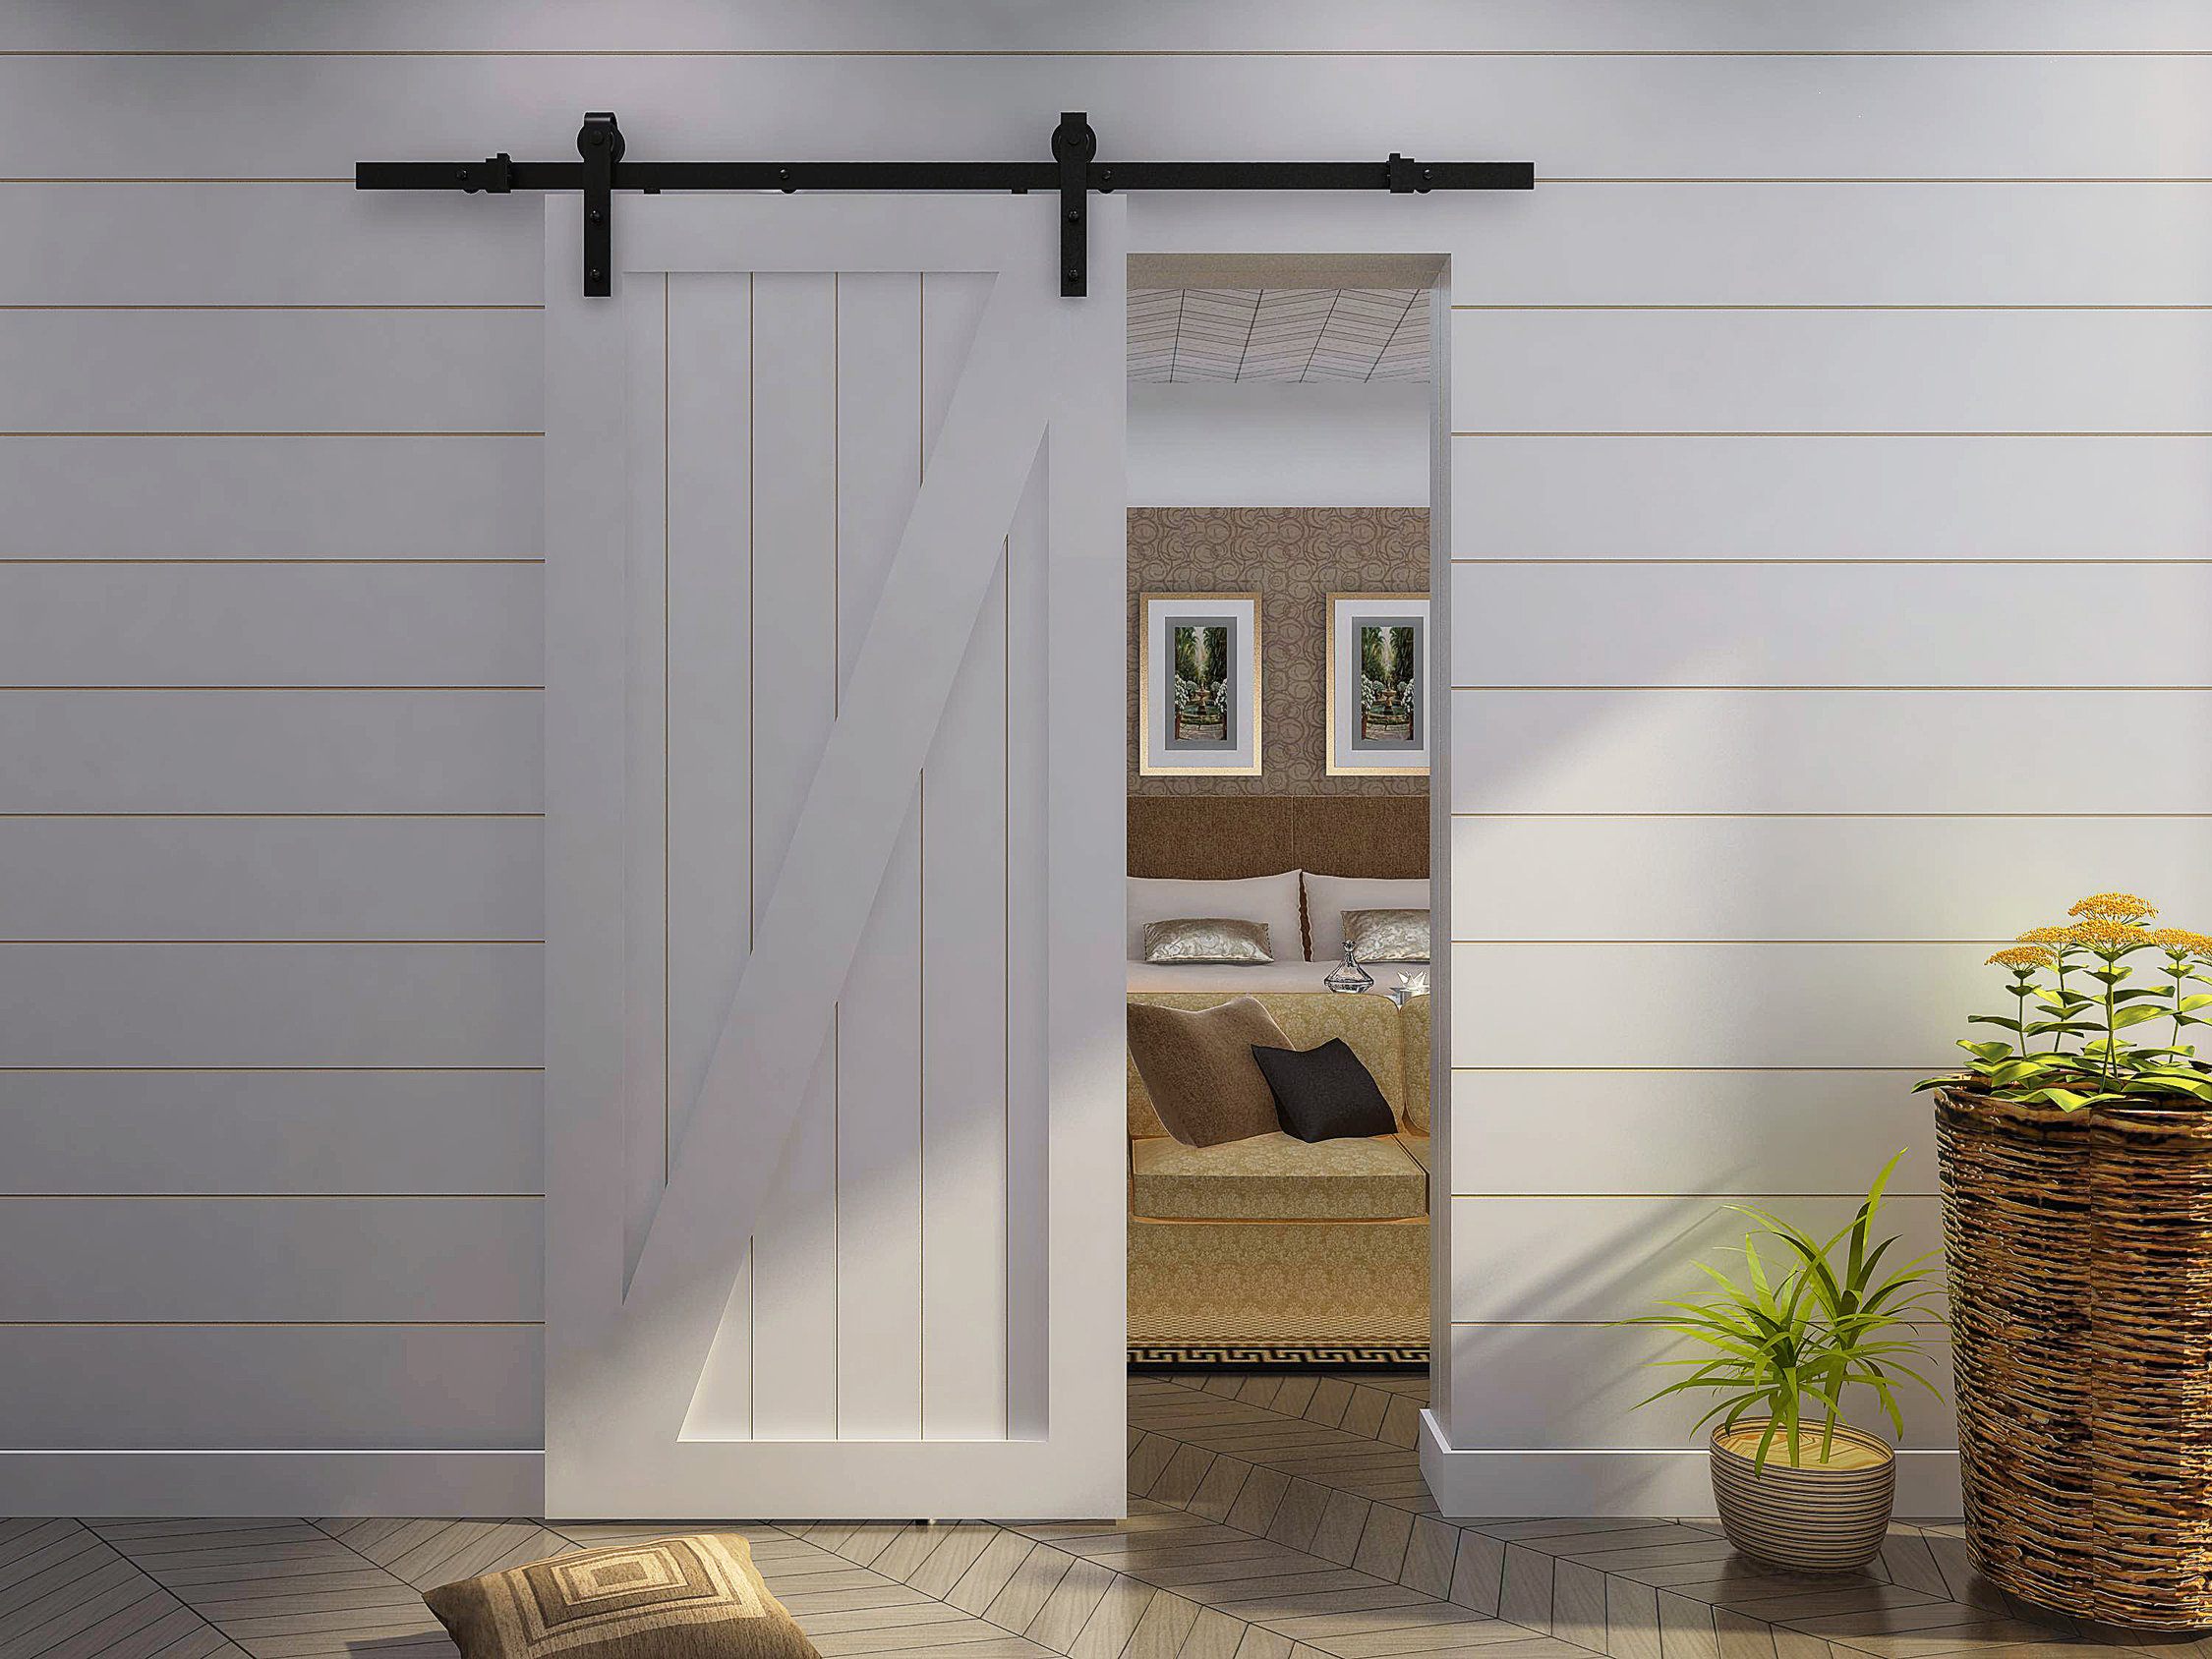 Barn Door Style Sliding Doors Zef Jam